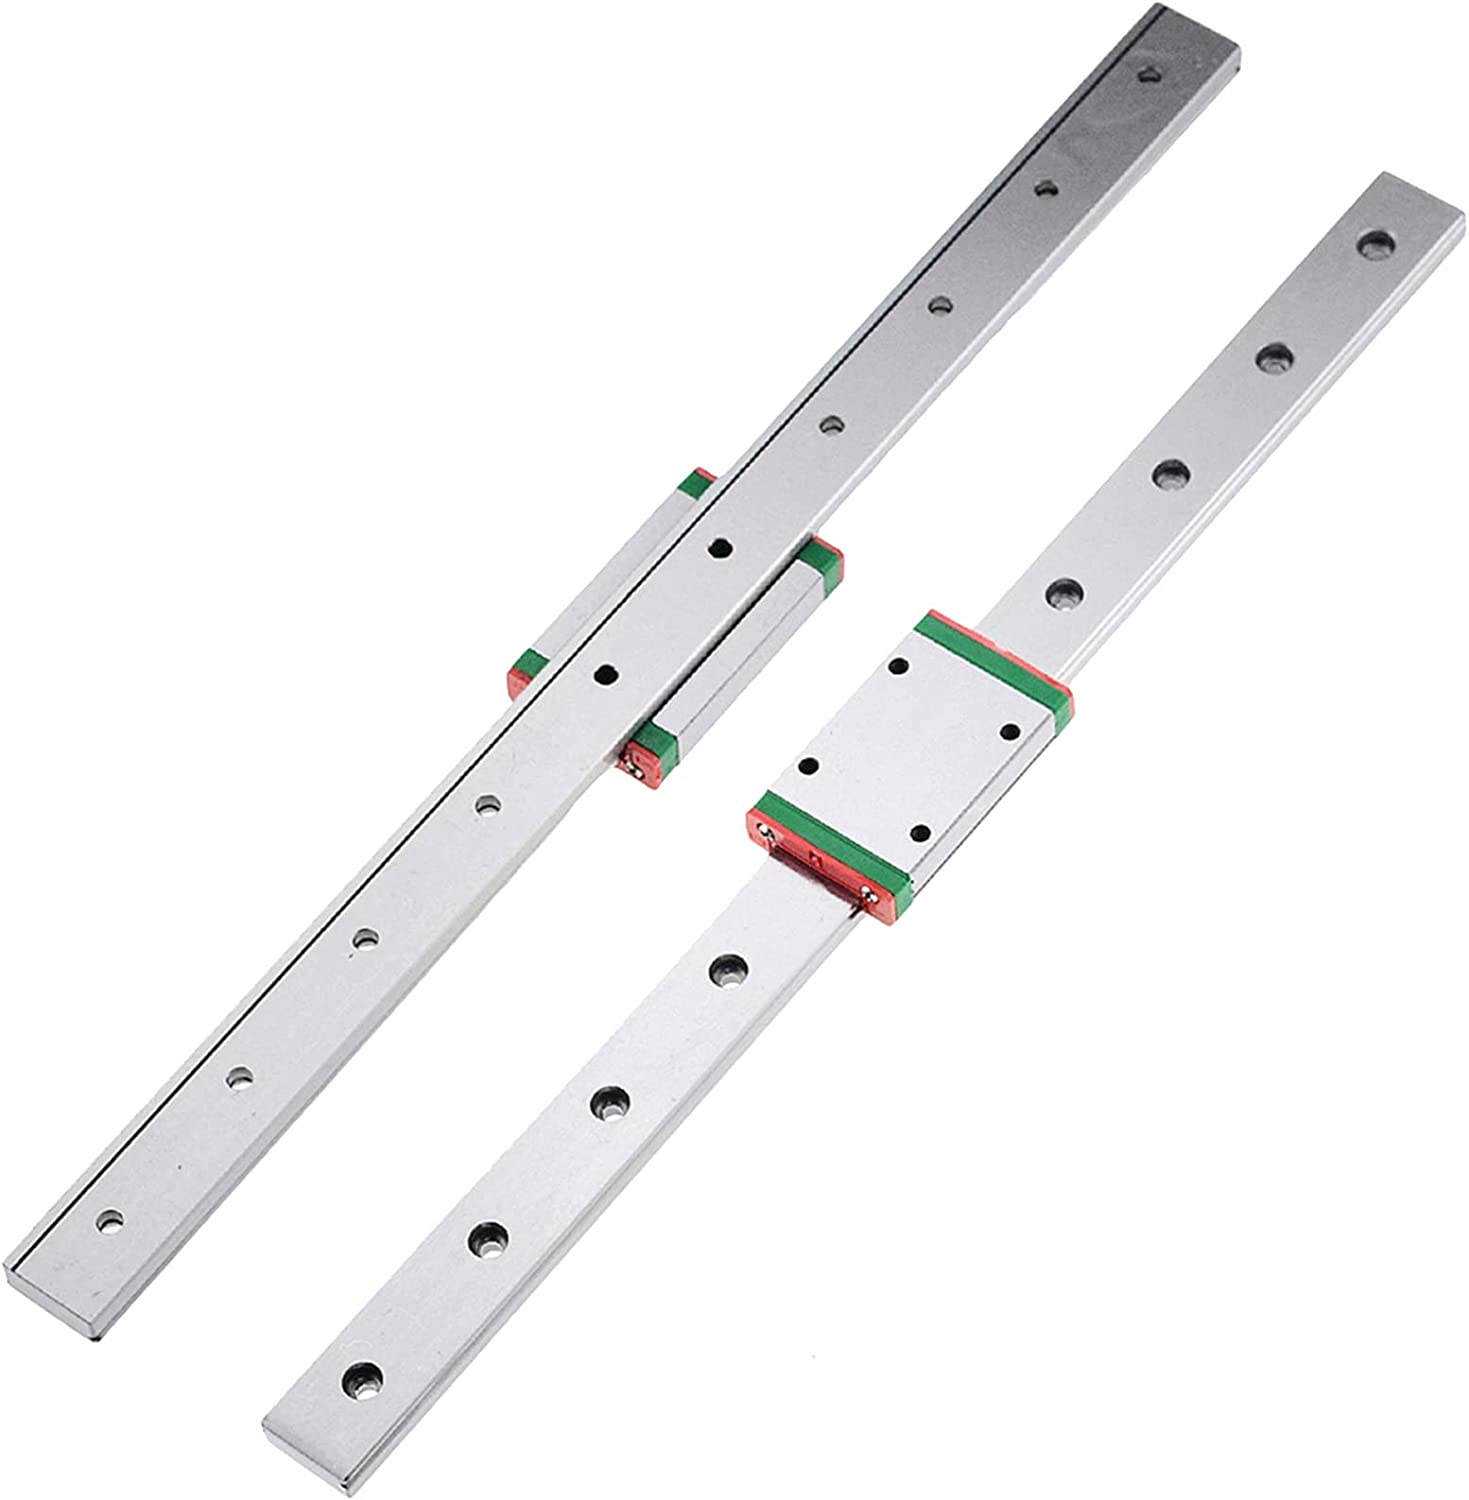 MGW Linear Rail Free shipping Slide MGW7 MGW12 MGW15 350 400 300 500m MGW9 450 New color